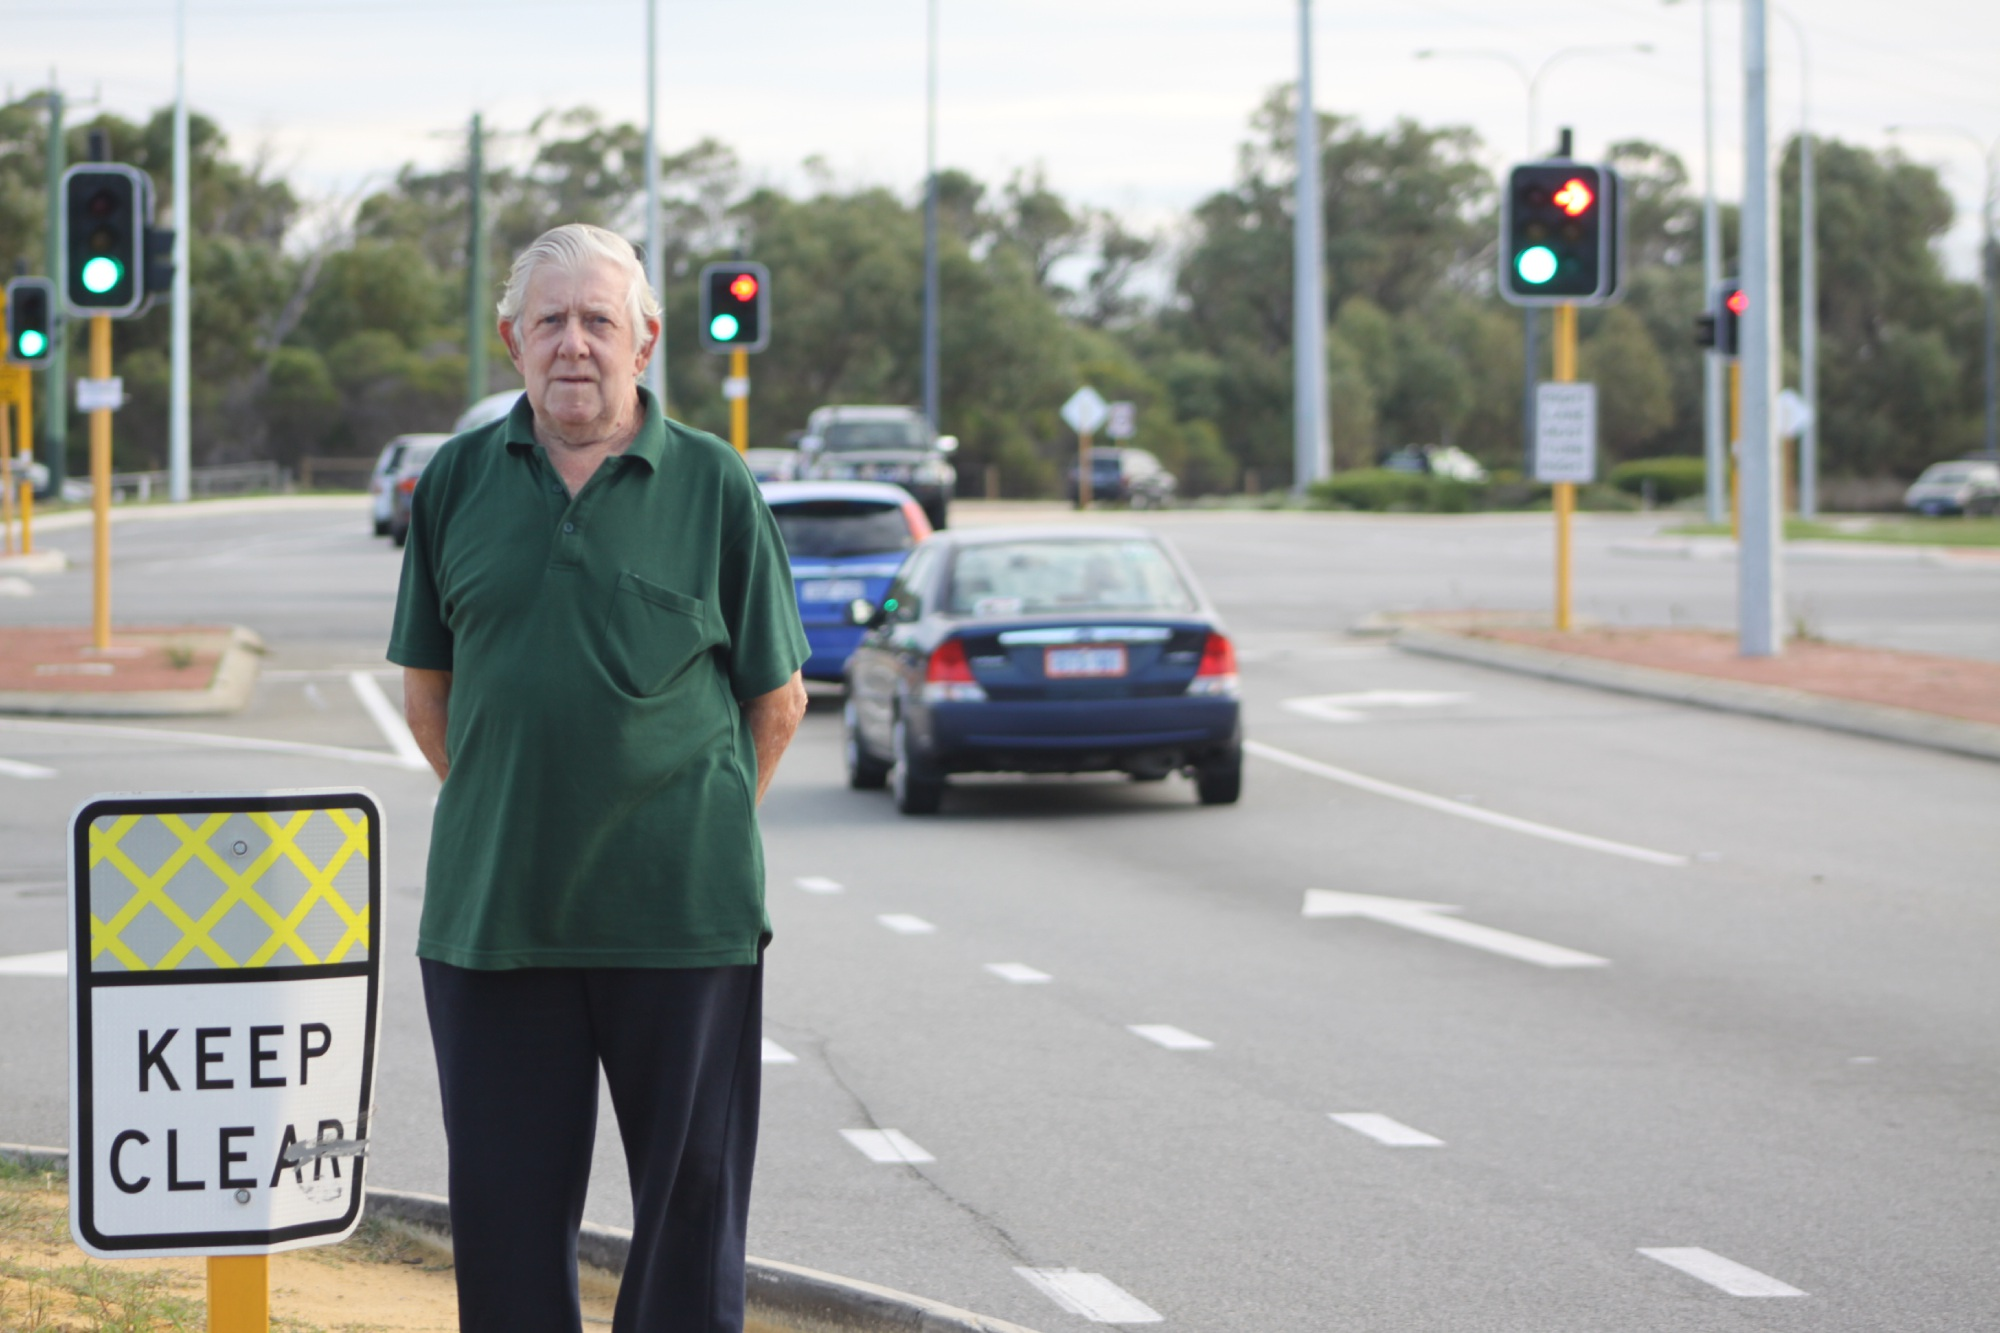 Rockingham resident Les Howard believes the intersection between Rockingham and Kwinana is dangerous